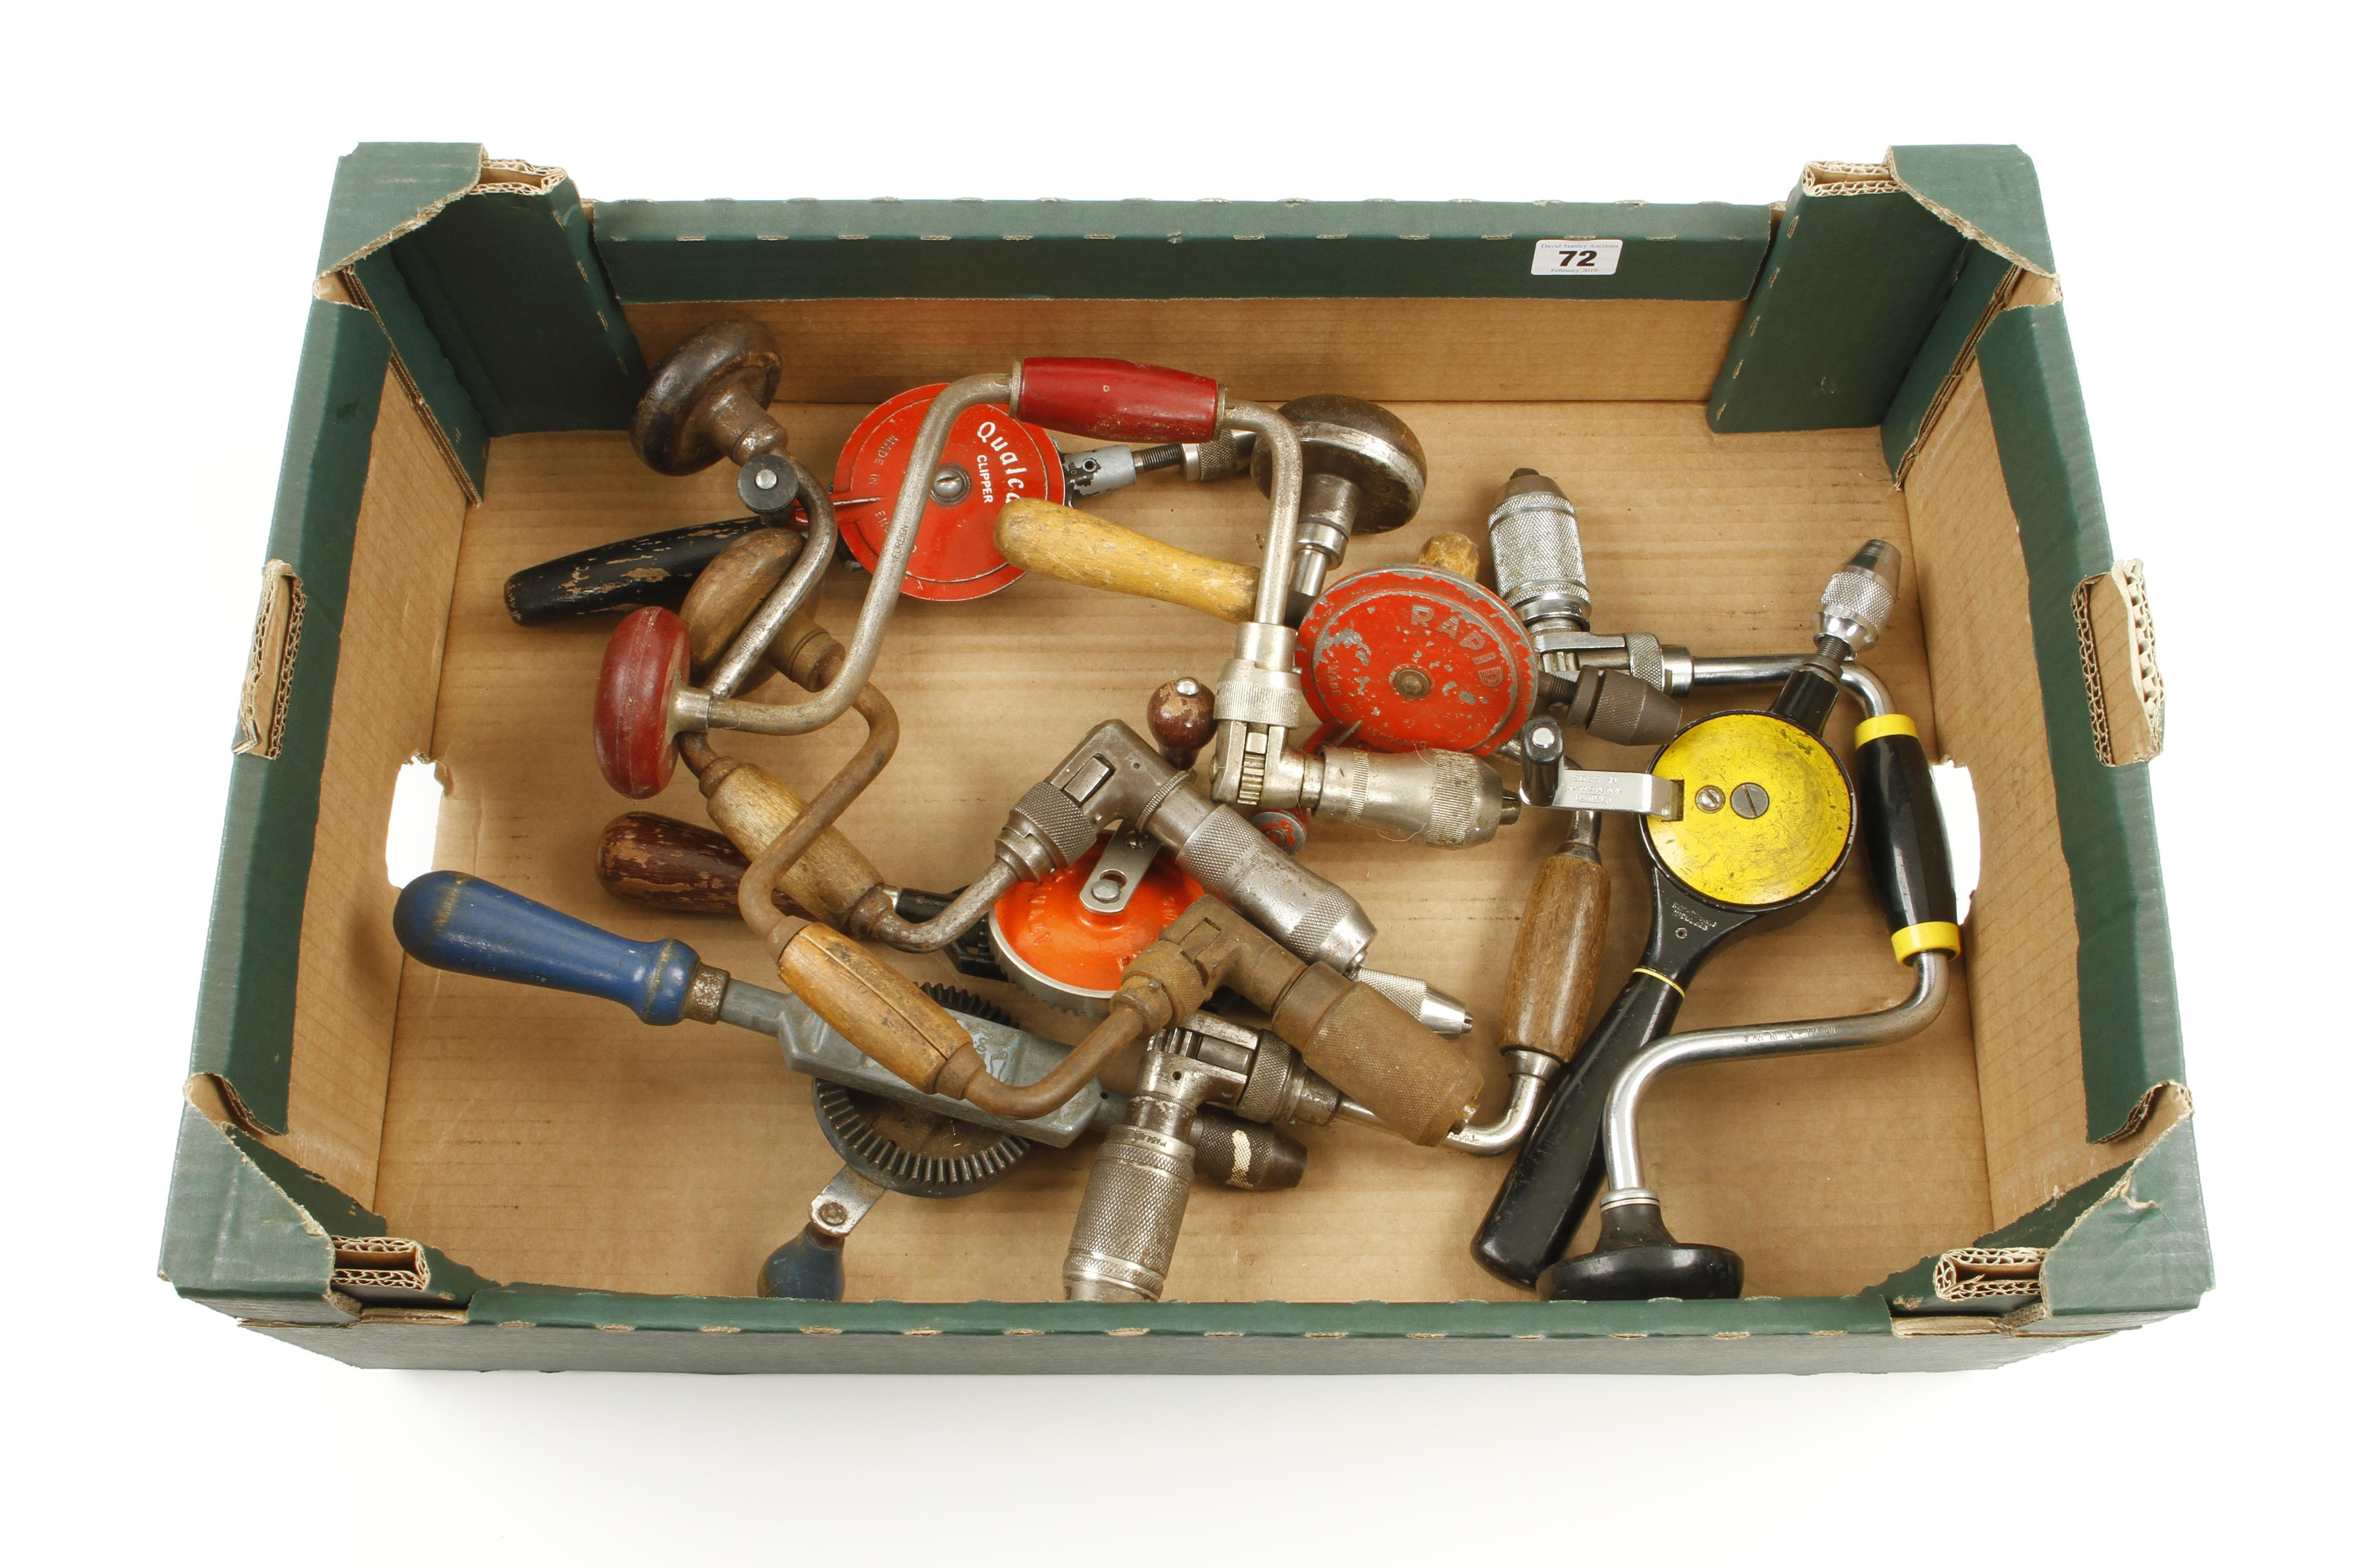 Lot 72 - Five ratchet braces and five hand drills G